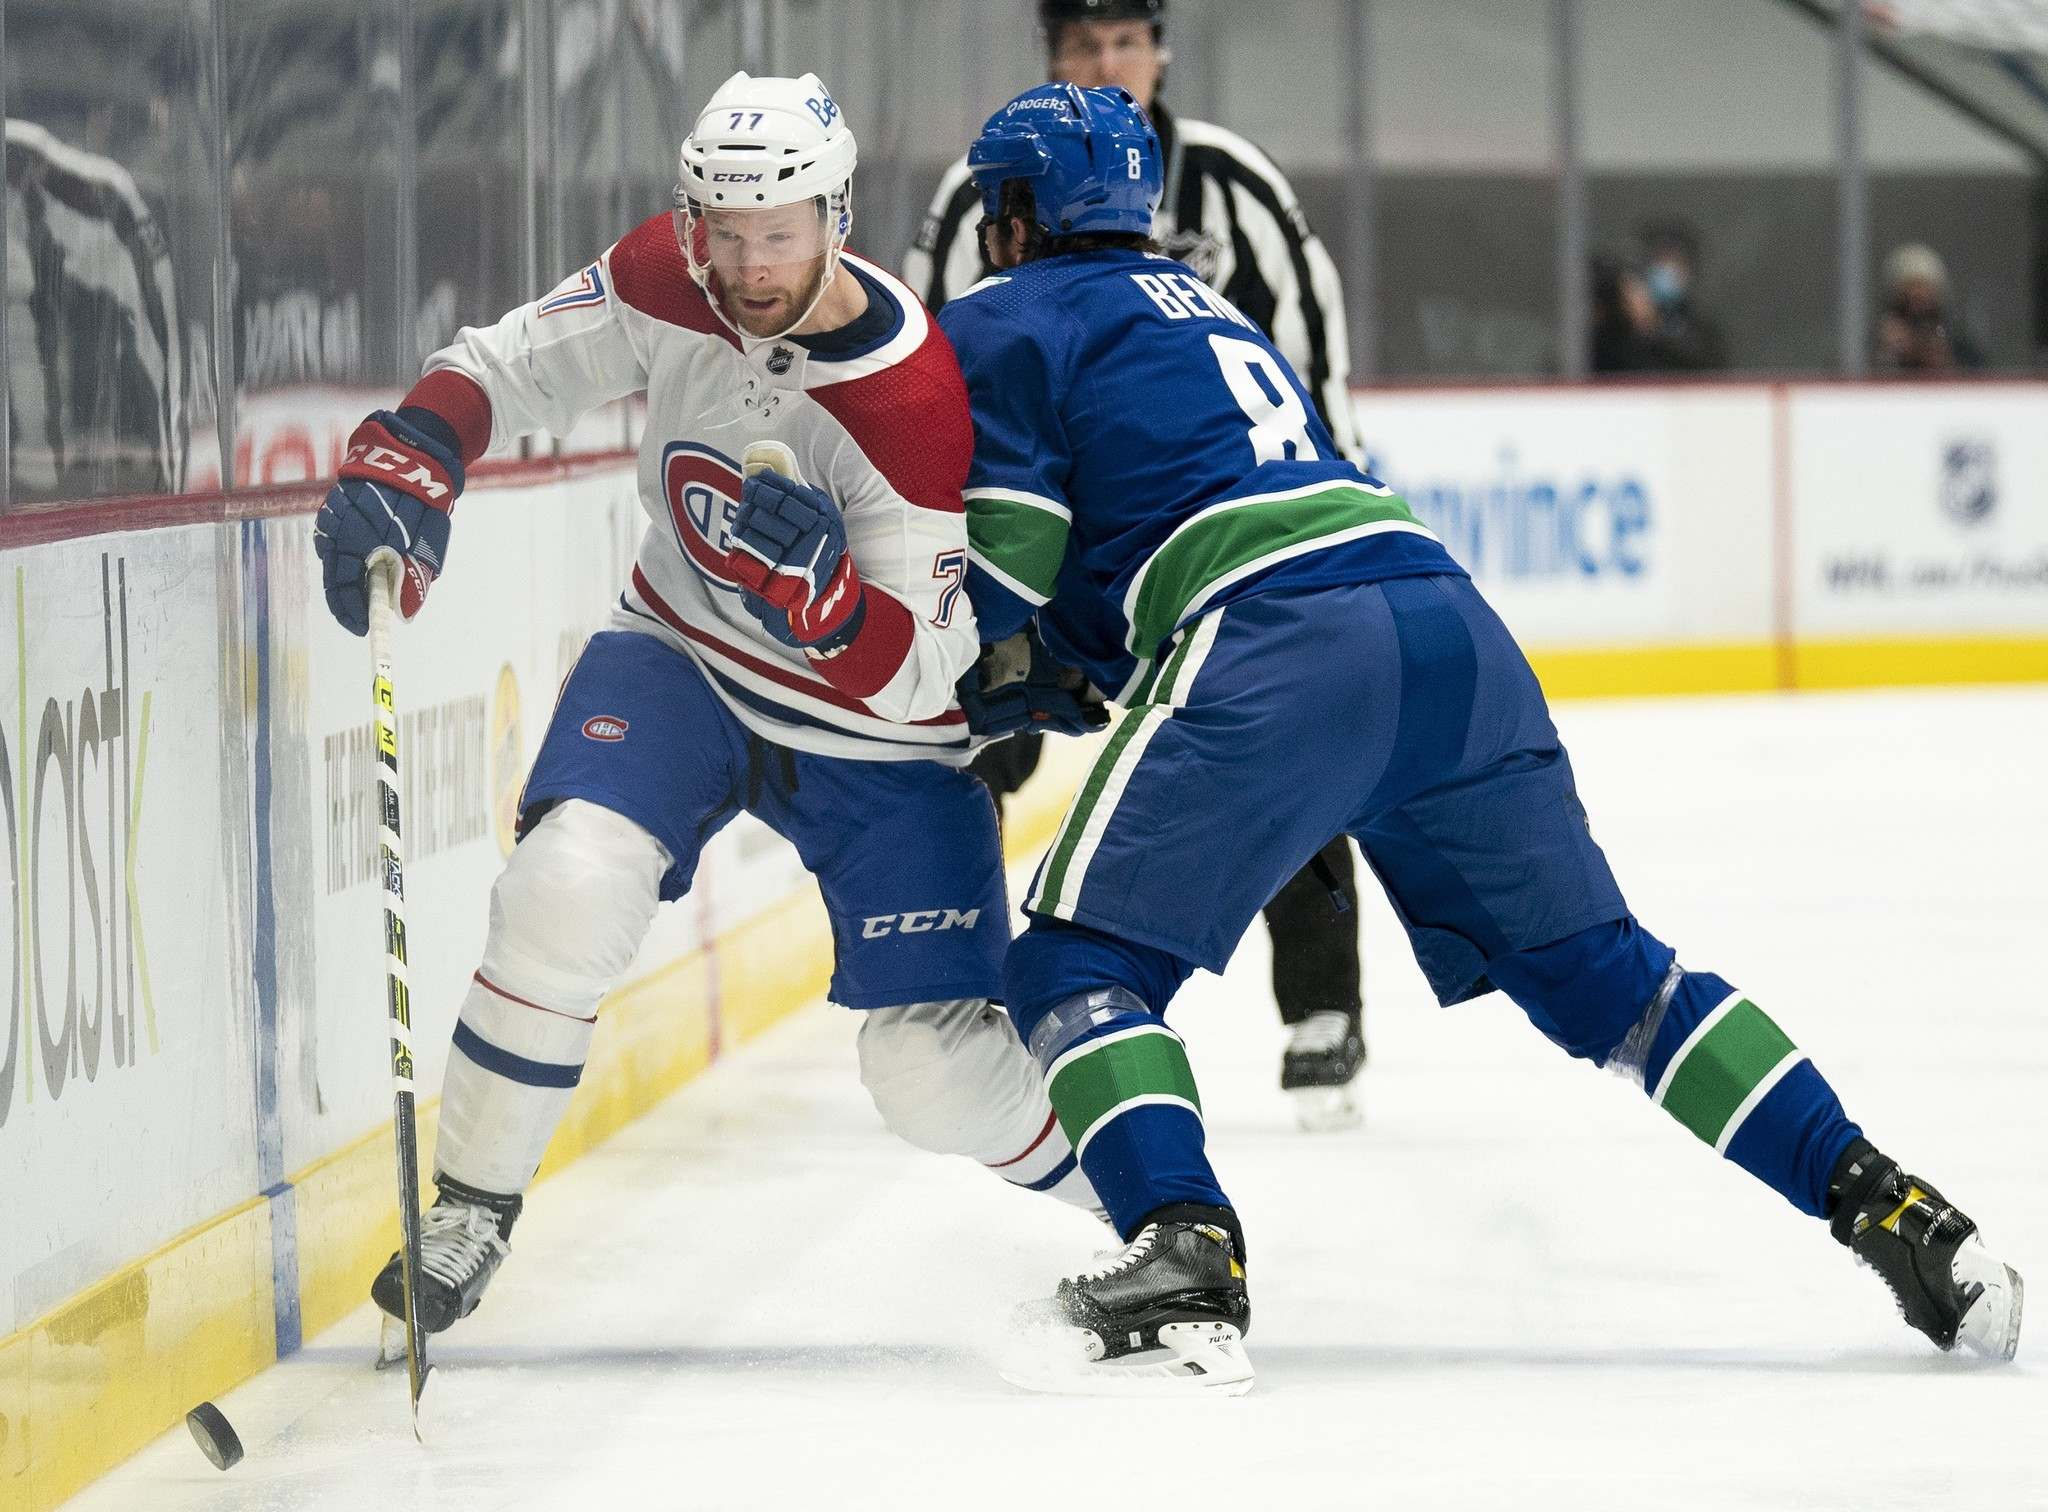 Montreal Canadiens defenceman Brett Kulak is checked by Vancouver Canucks defenceman Jordie Benn during a game in Vancouver last month.